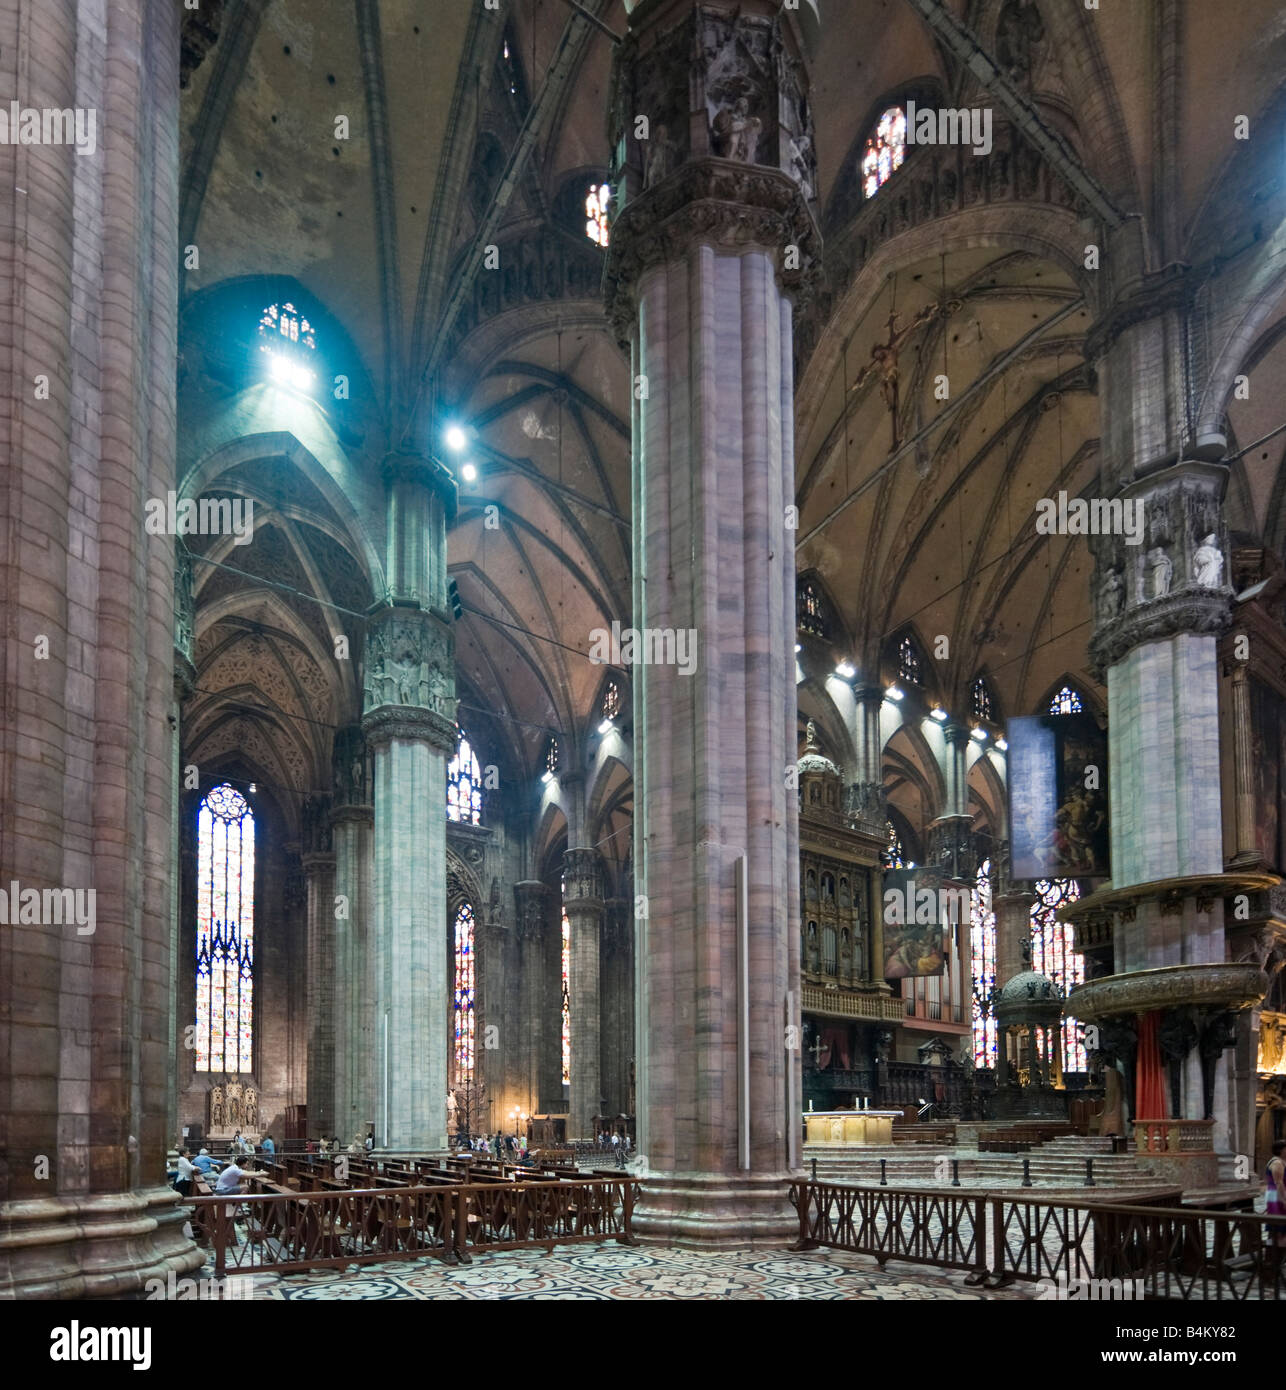 Interior of the Duomo (Cathedral), Piazza del Duomo, Milan, Lombardy, Italy Stock Photo